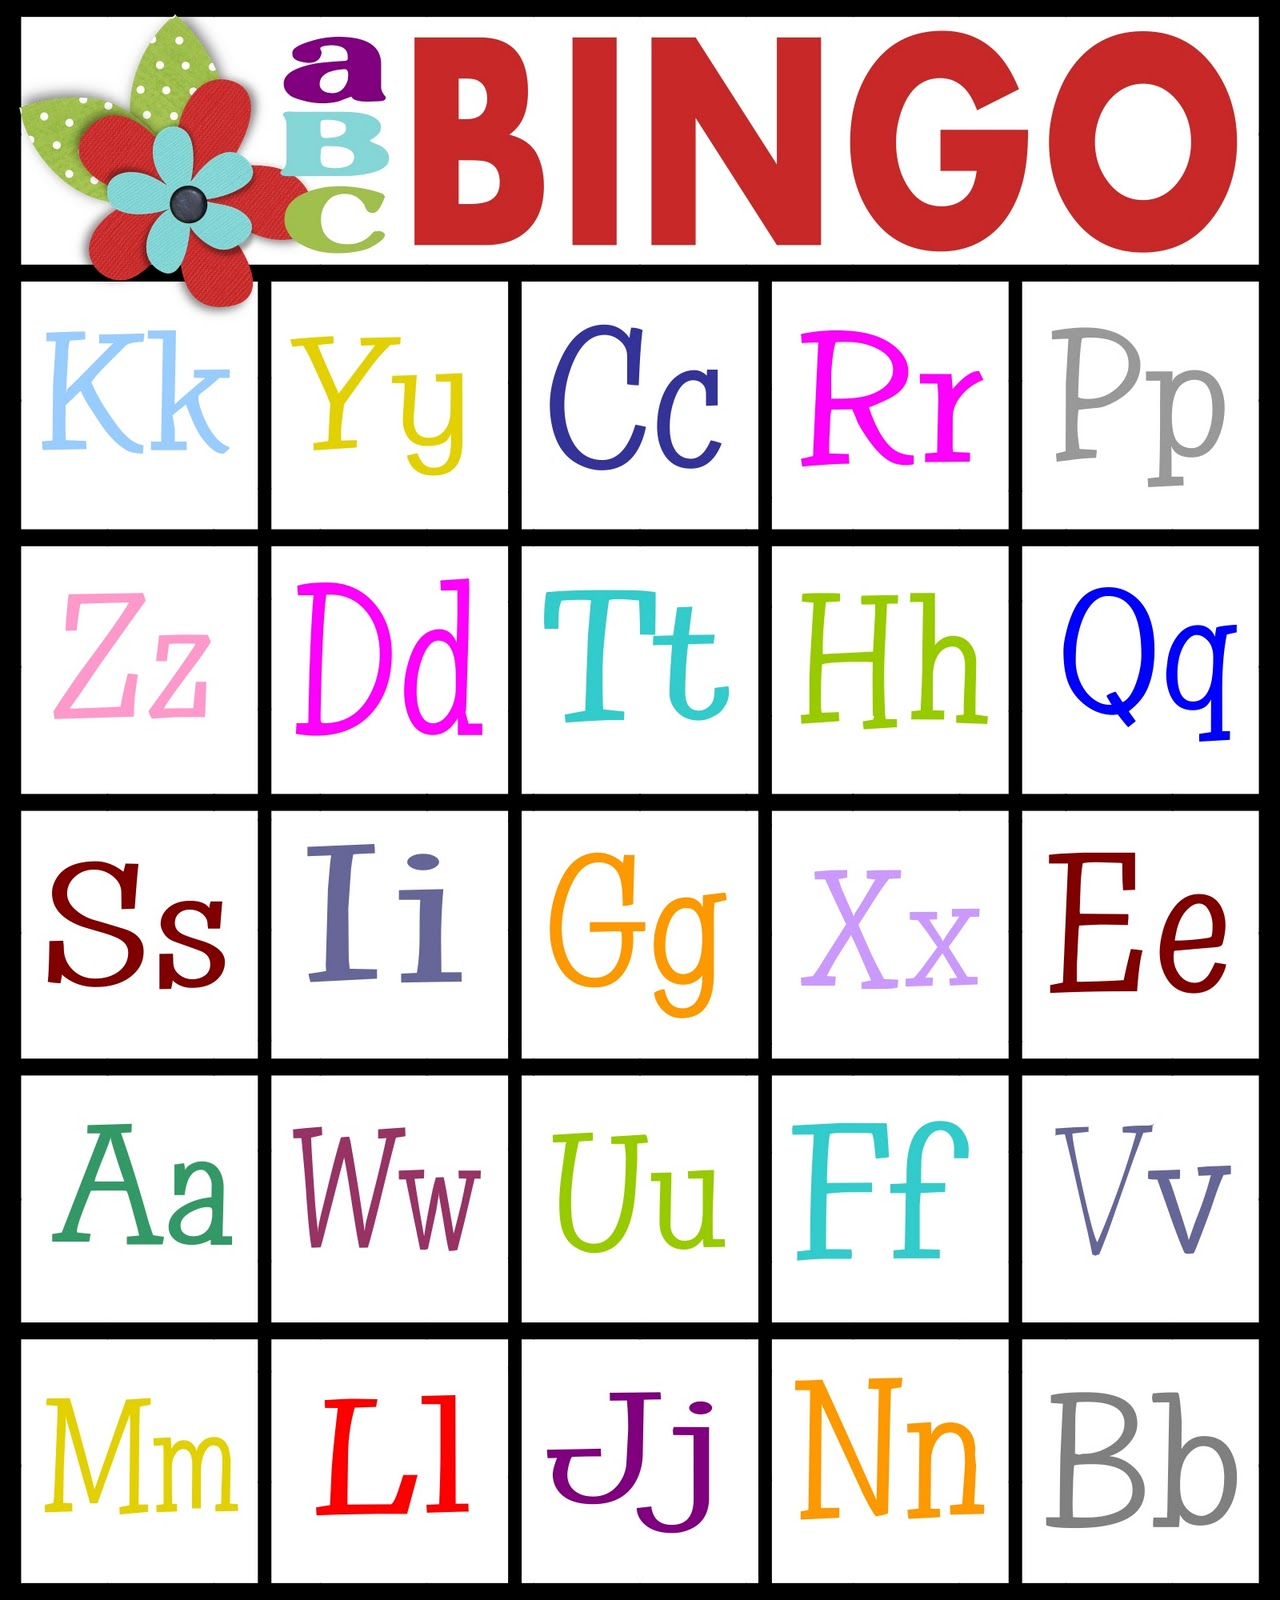 Anyway I Thought It Might Be Nice To Share So If Any Of You Have Little Ones That Need Help With Their Abc S Play Some Bingo